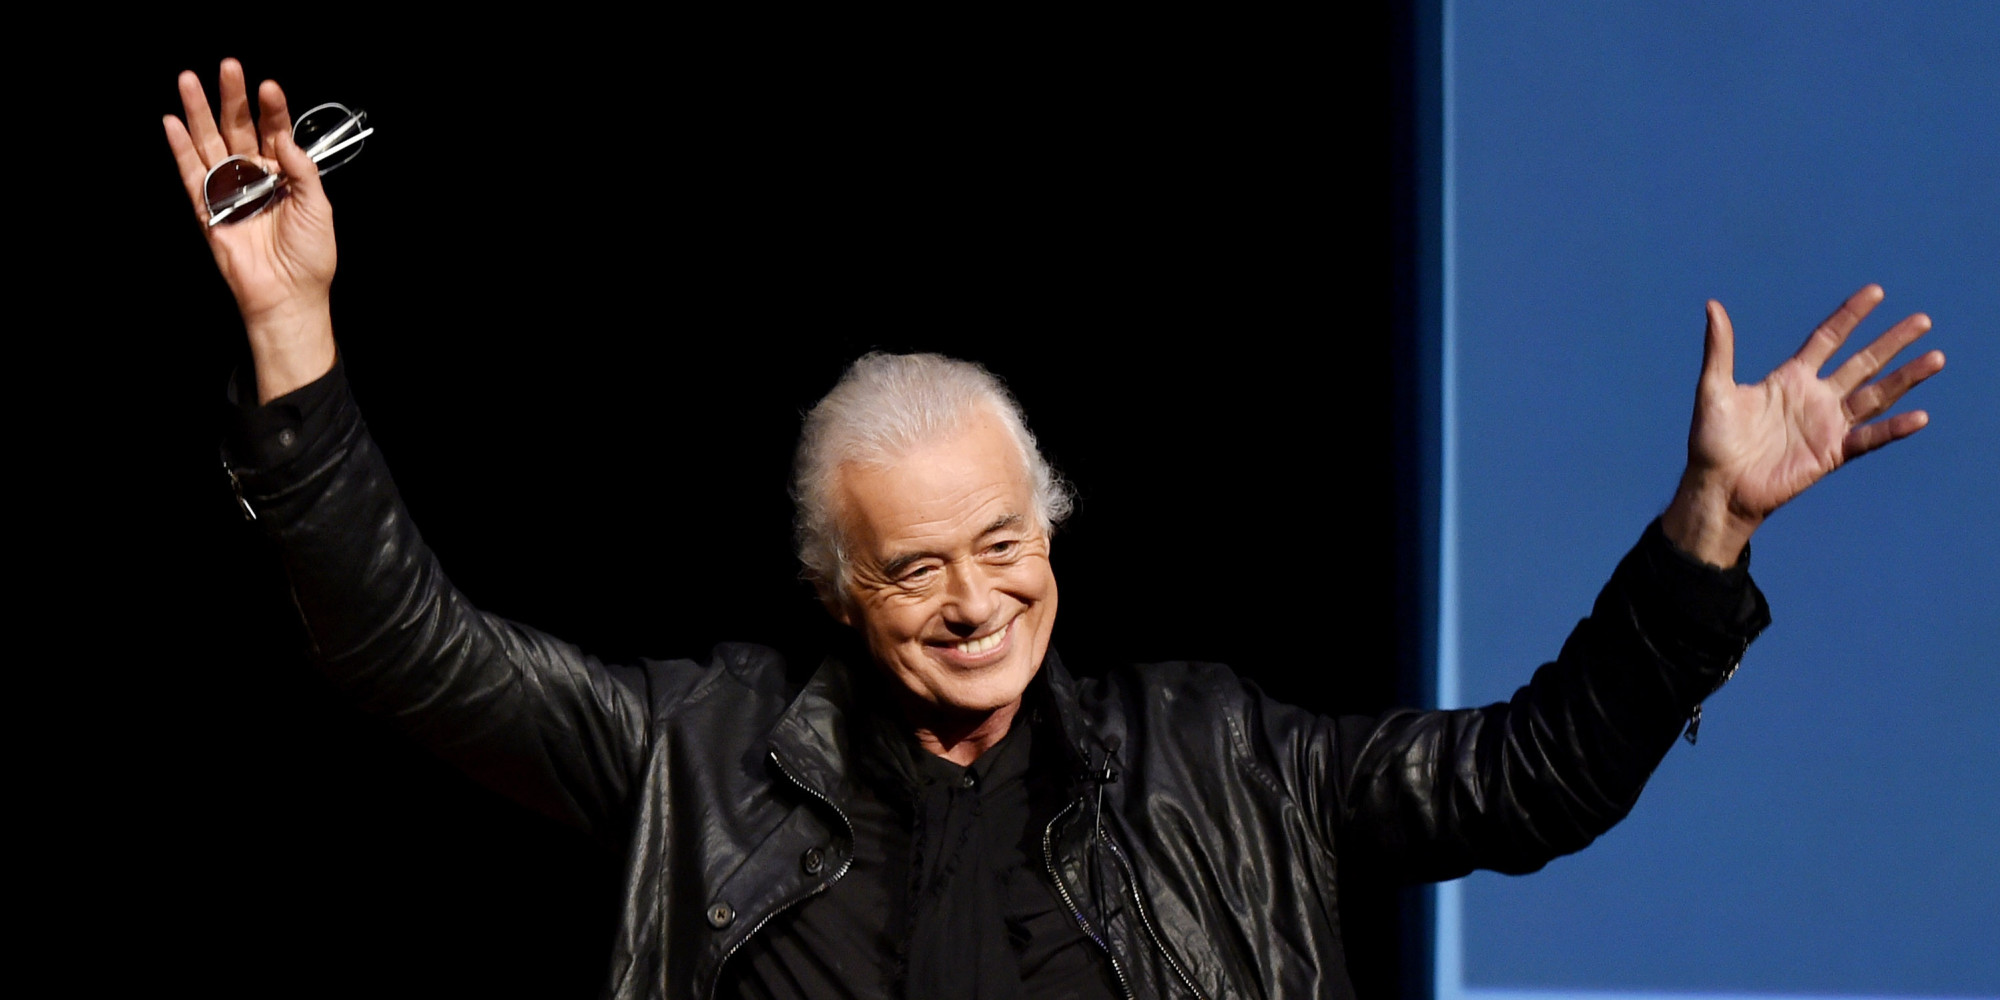 Led Zeppelin's Jimmy Page, 71, Dating 25-Year-Old Scarlett